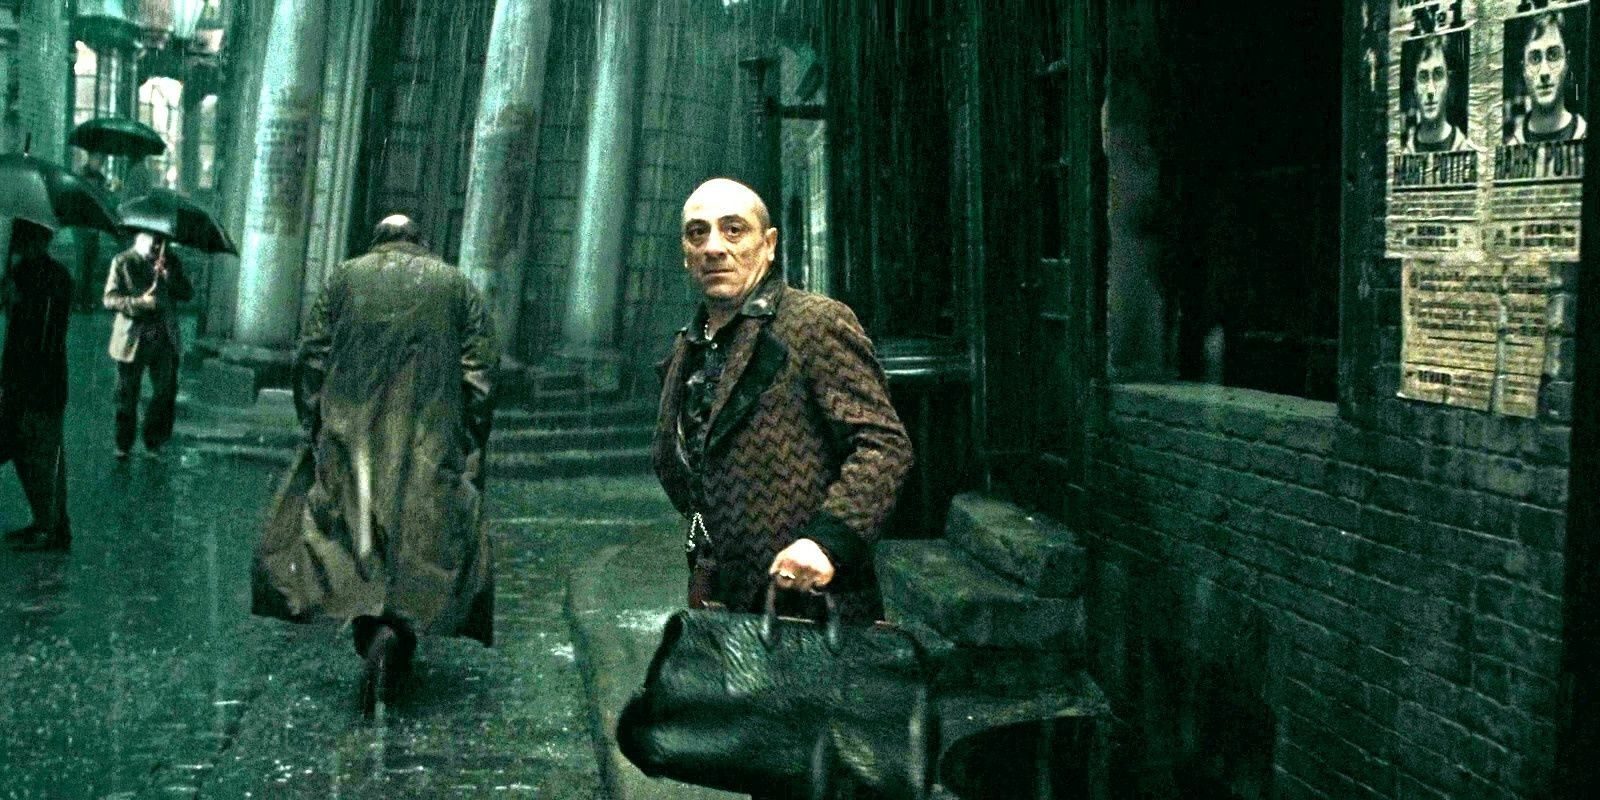 Harry potter order of the phoenix members ranked by